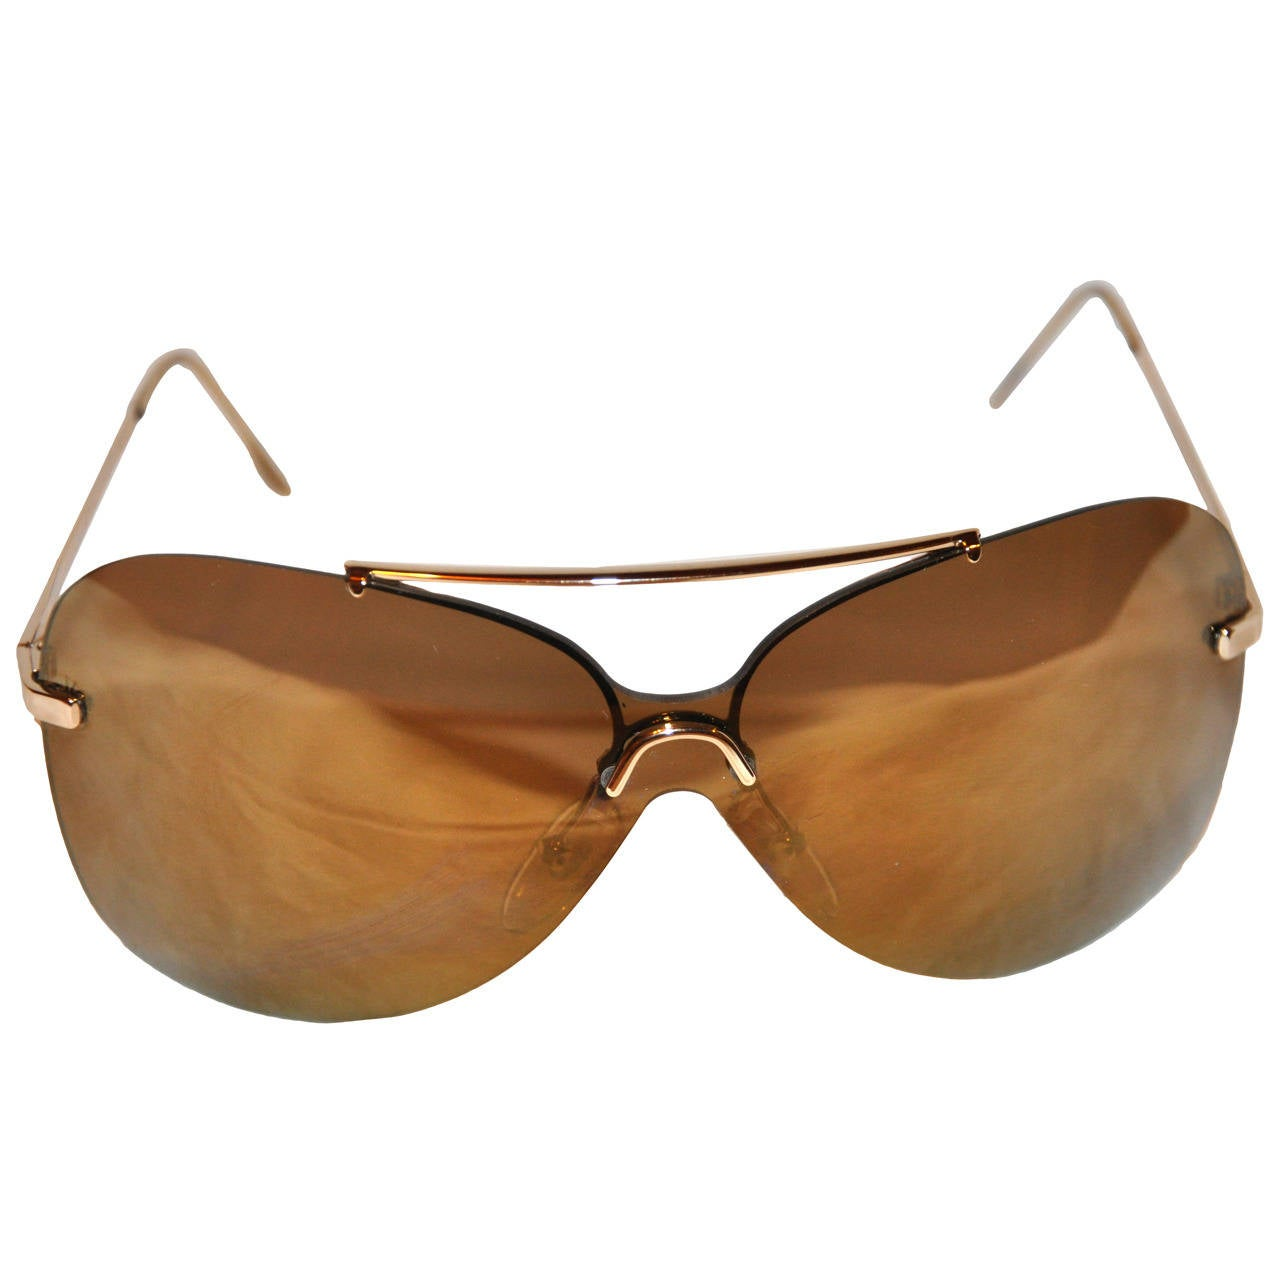 Christian Dior Gold Mirrored with Gold Hardware Sunglasses 1